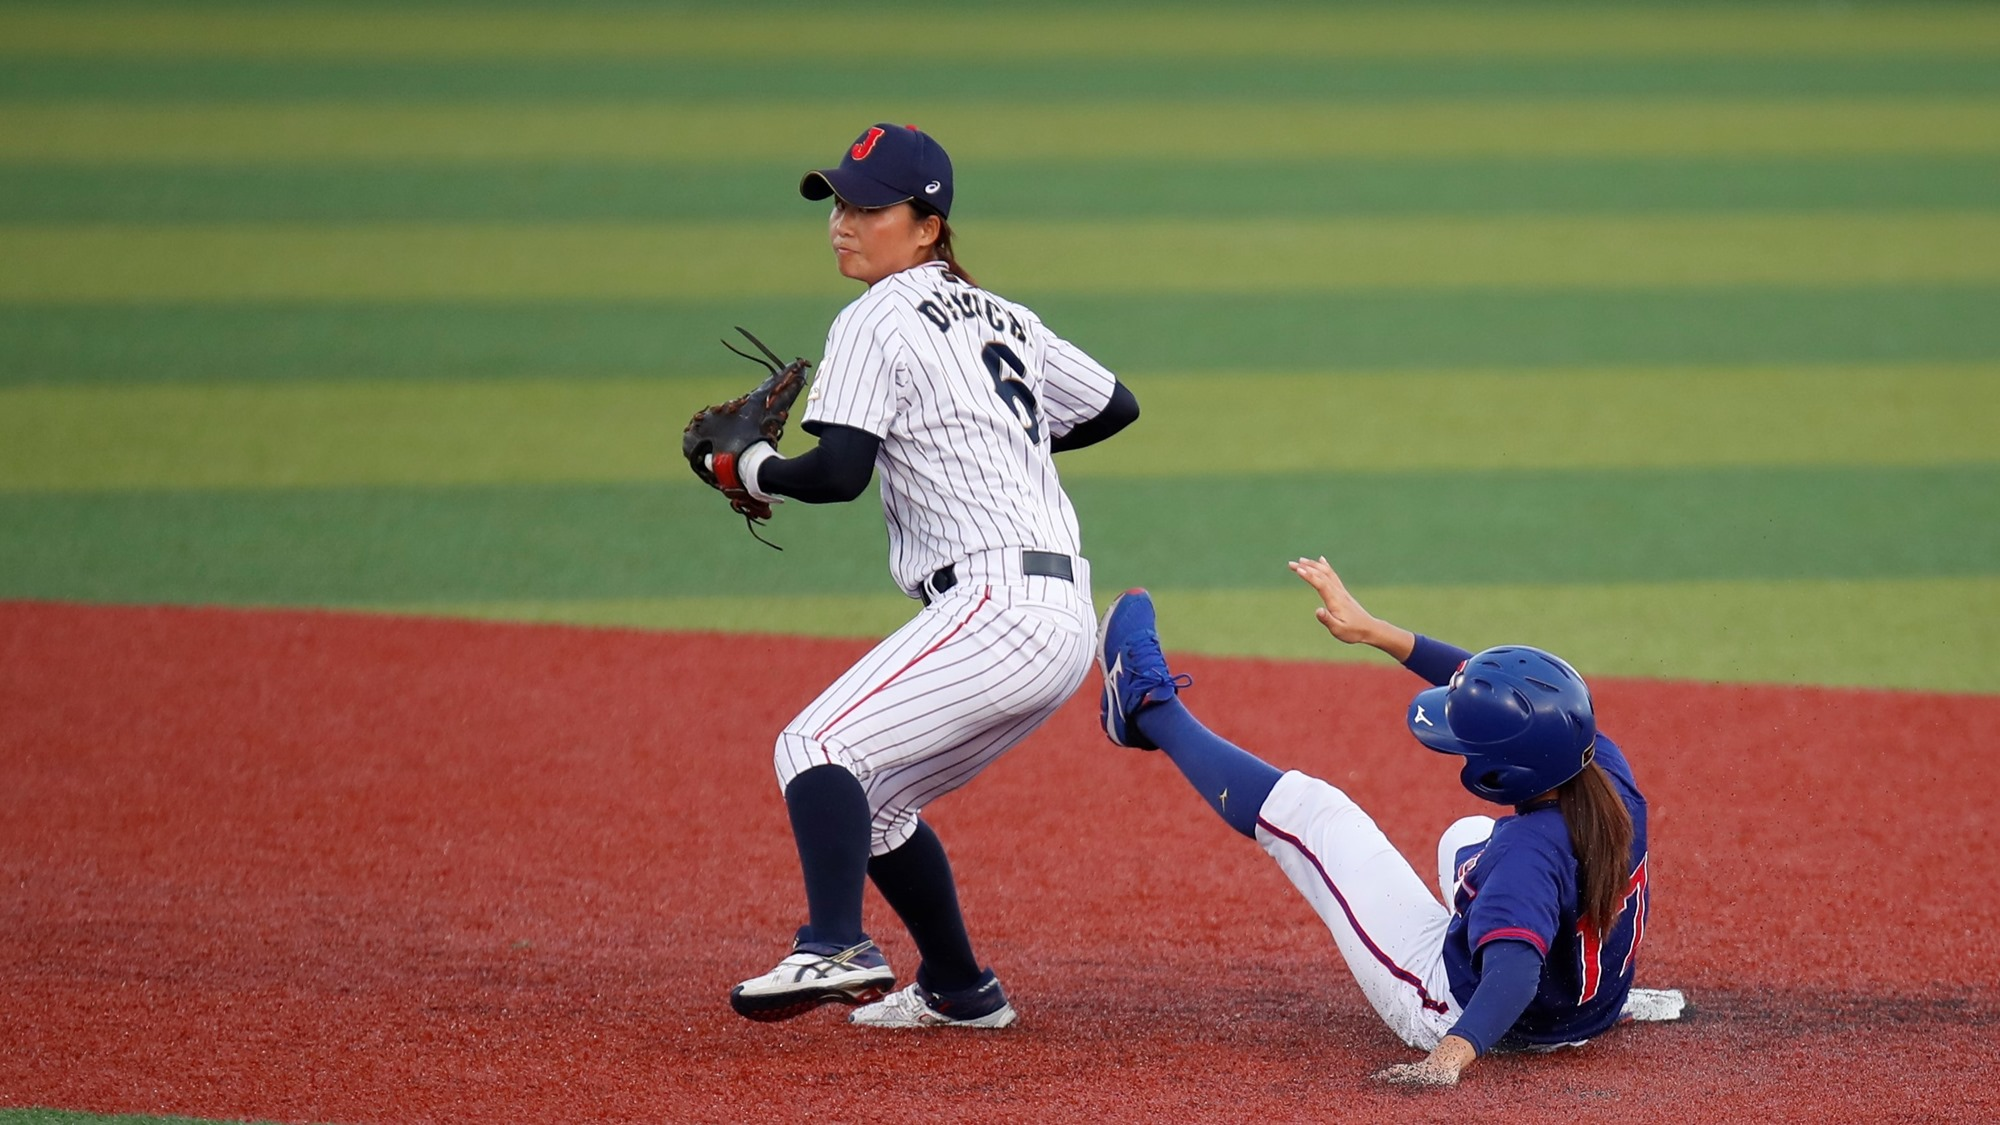 Japan played strong defense against a dangerous Chinese Taipei side